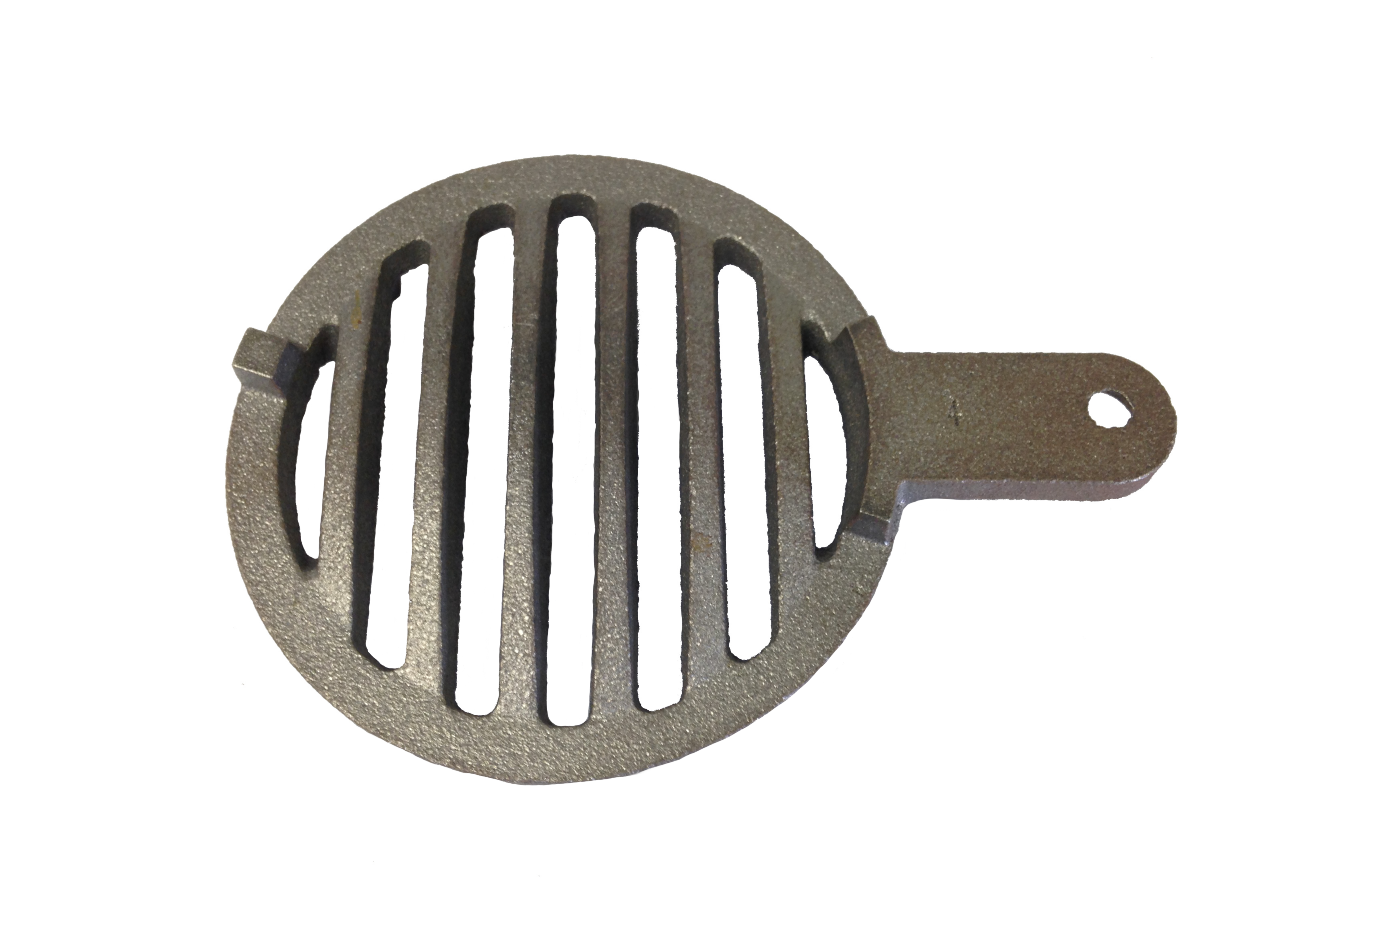 A replacement Grate suitable for Morso Squirrel 1430 stoves.